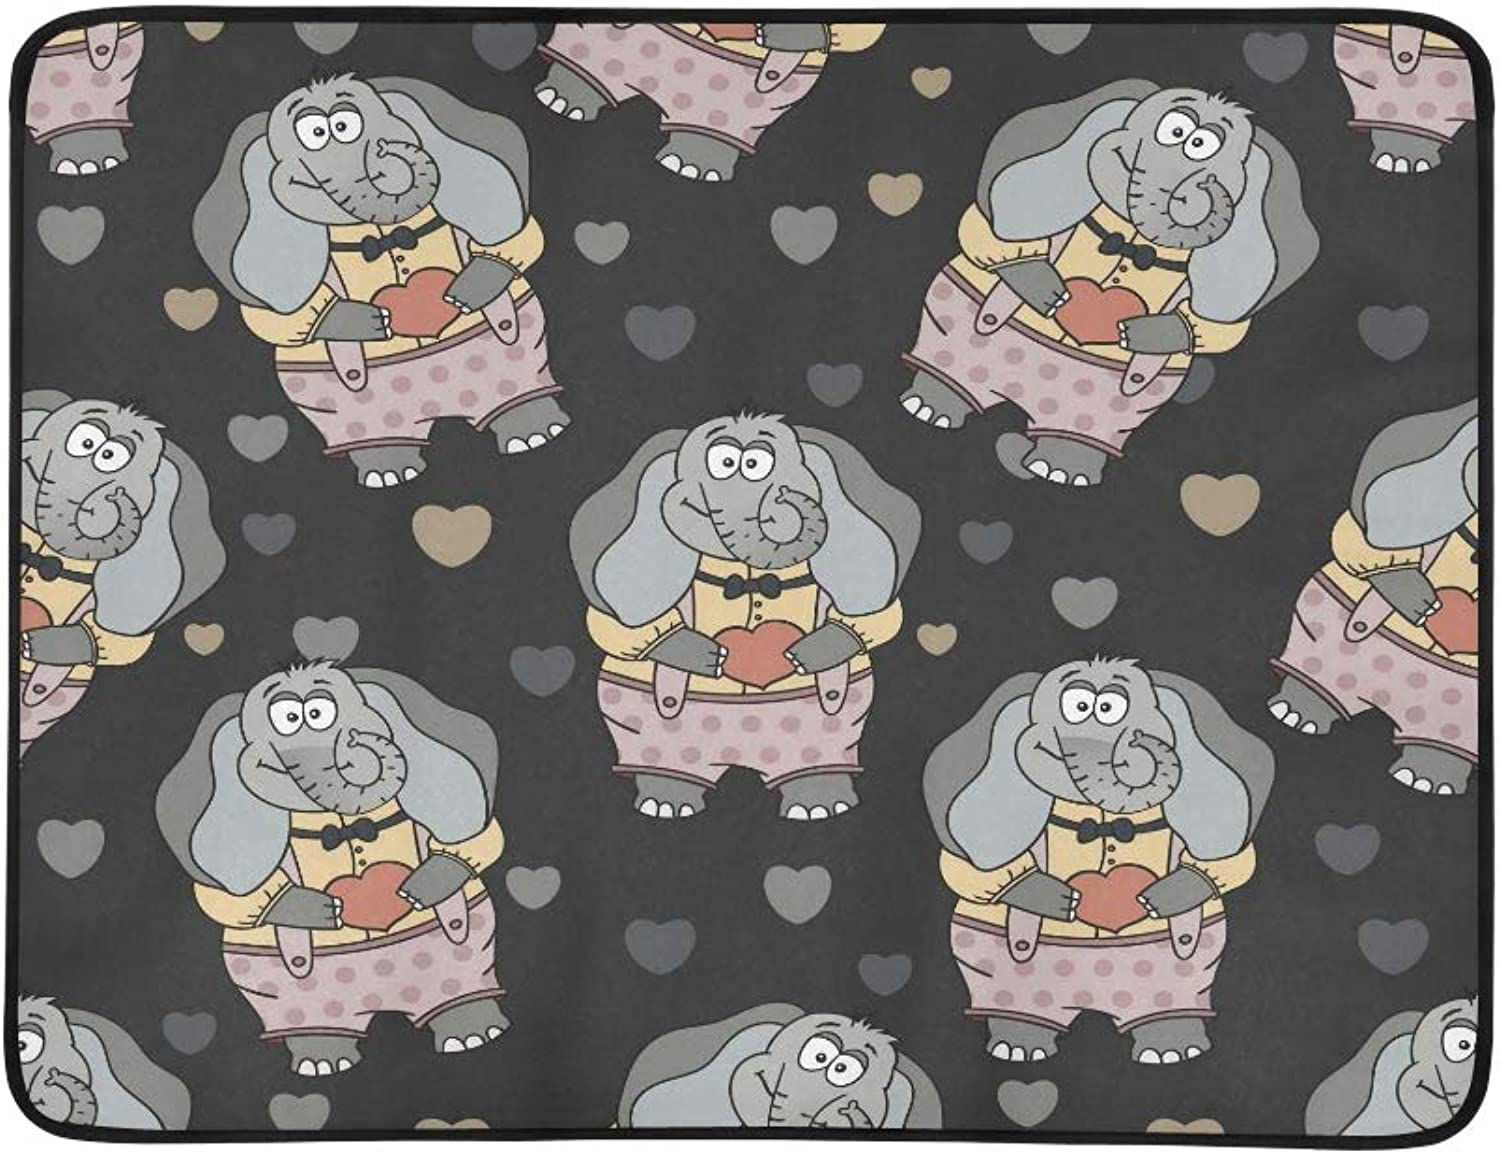 Cartoon Illustration of Funny Cute Elephant in Lov Pattern Portable and Foldable Blanket Mat 60x78 Inch Handy Mat for Camping Picnic Beach Indoor Outdoor Travel